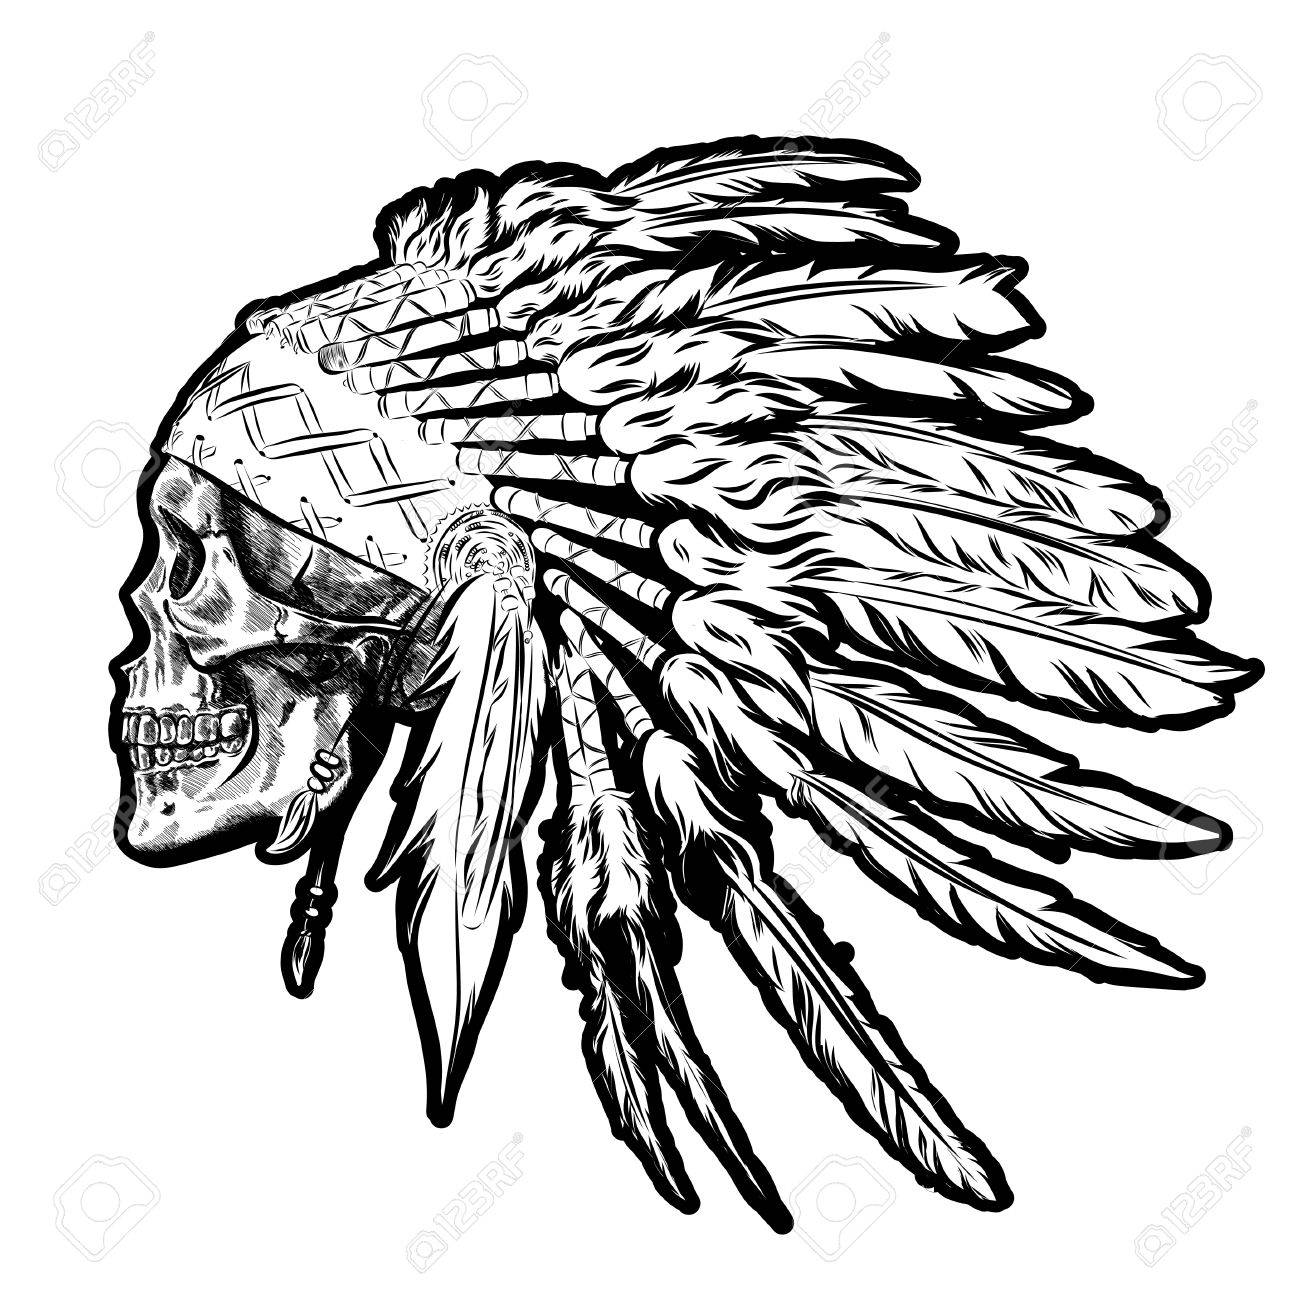 Indian with headdress profile